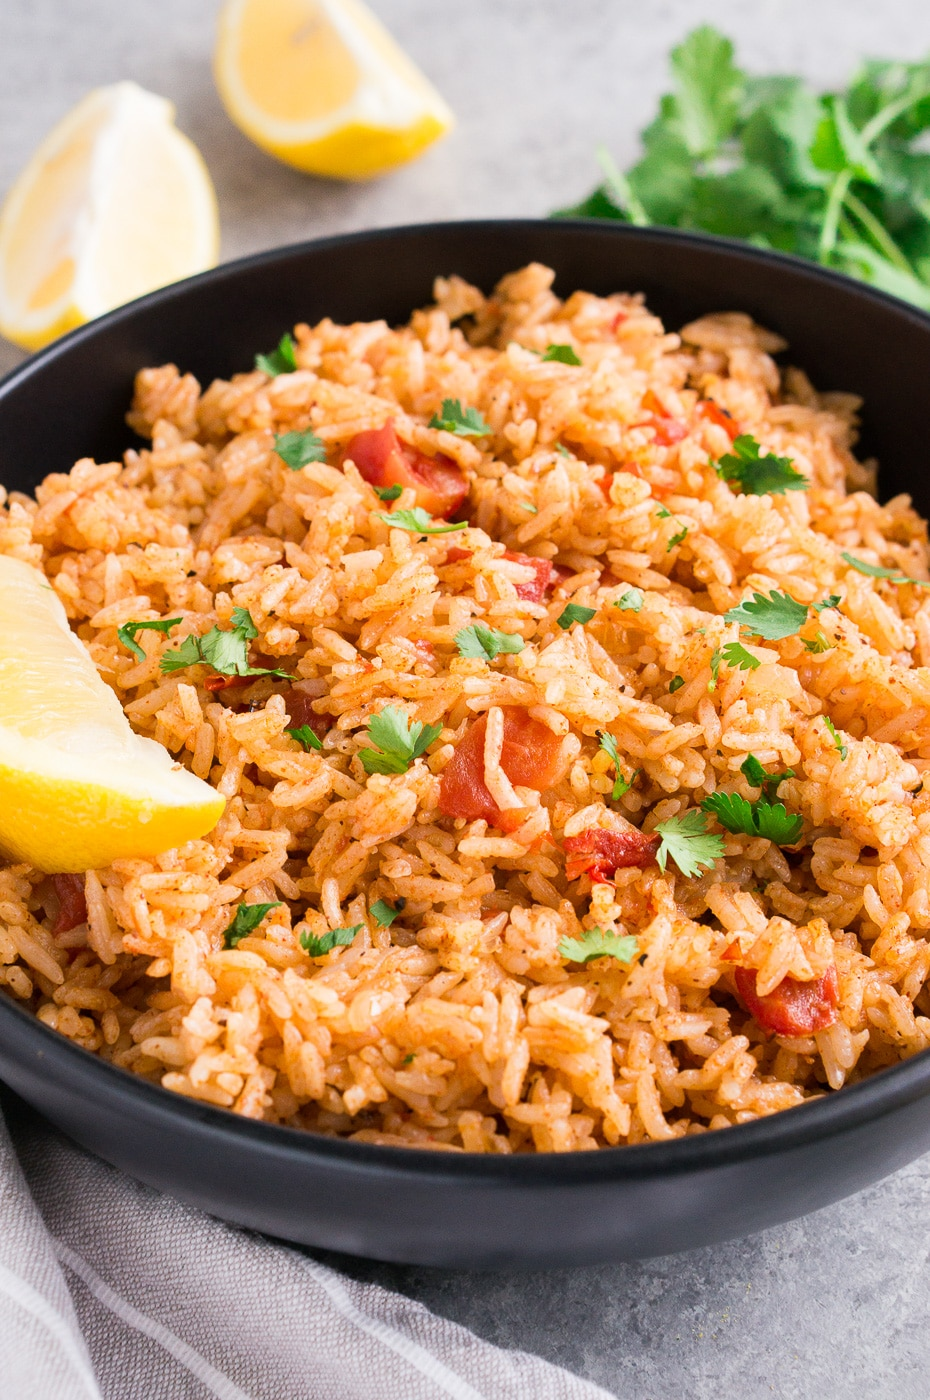 close up of Mexican rice in a bowl